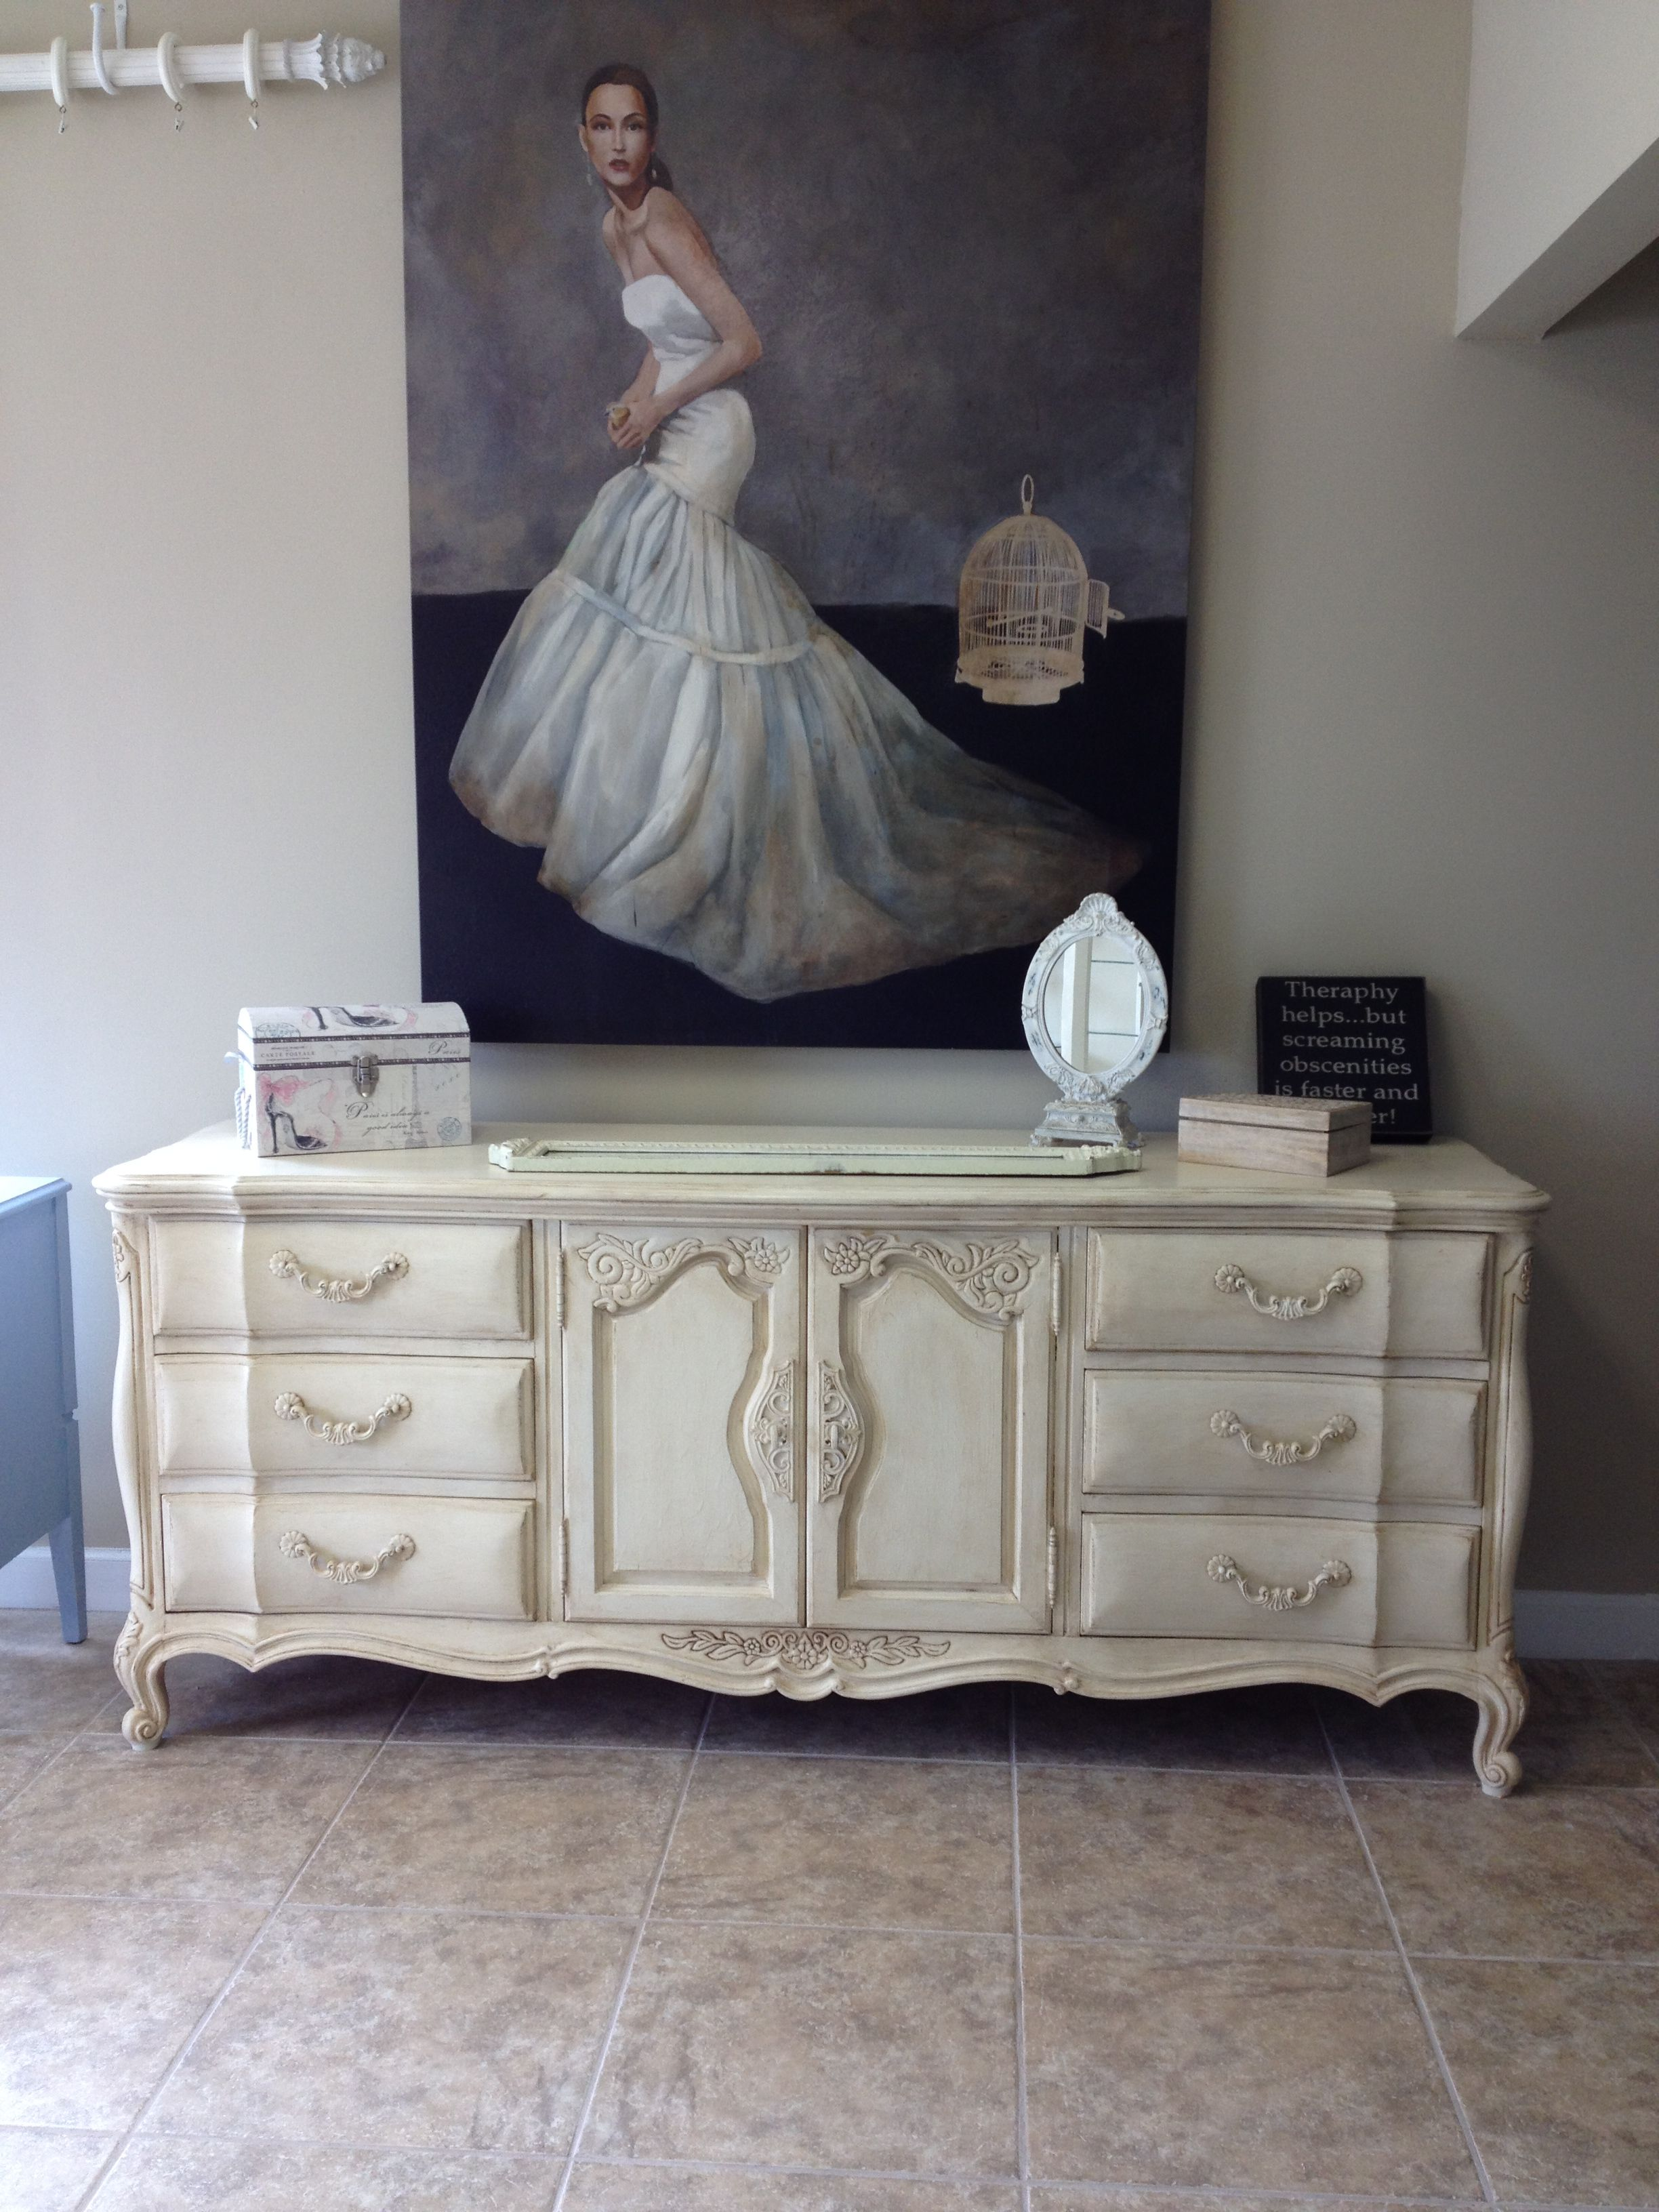 French Provincial Dresser With Nine Dovetail Drawers By National Furniture Co In Mt